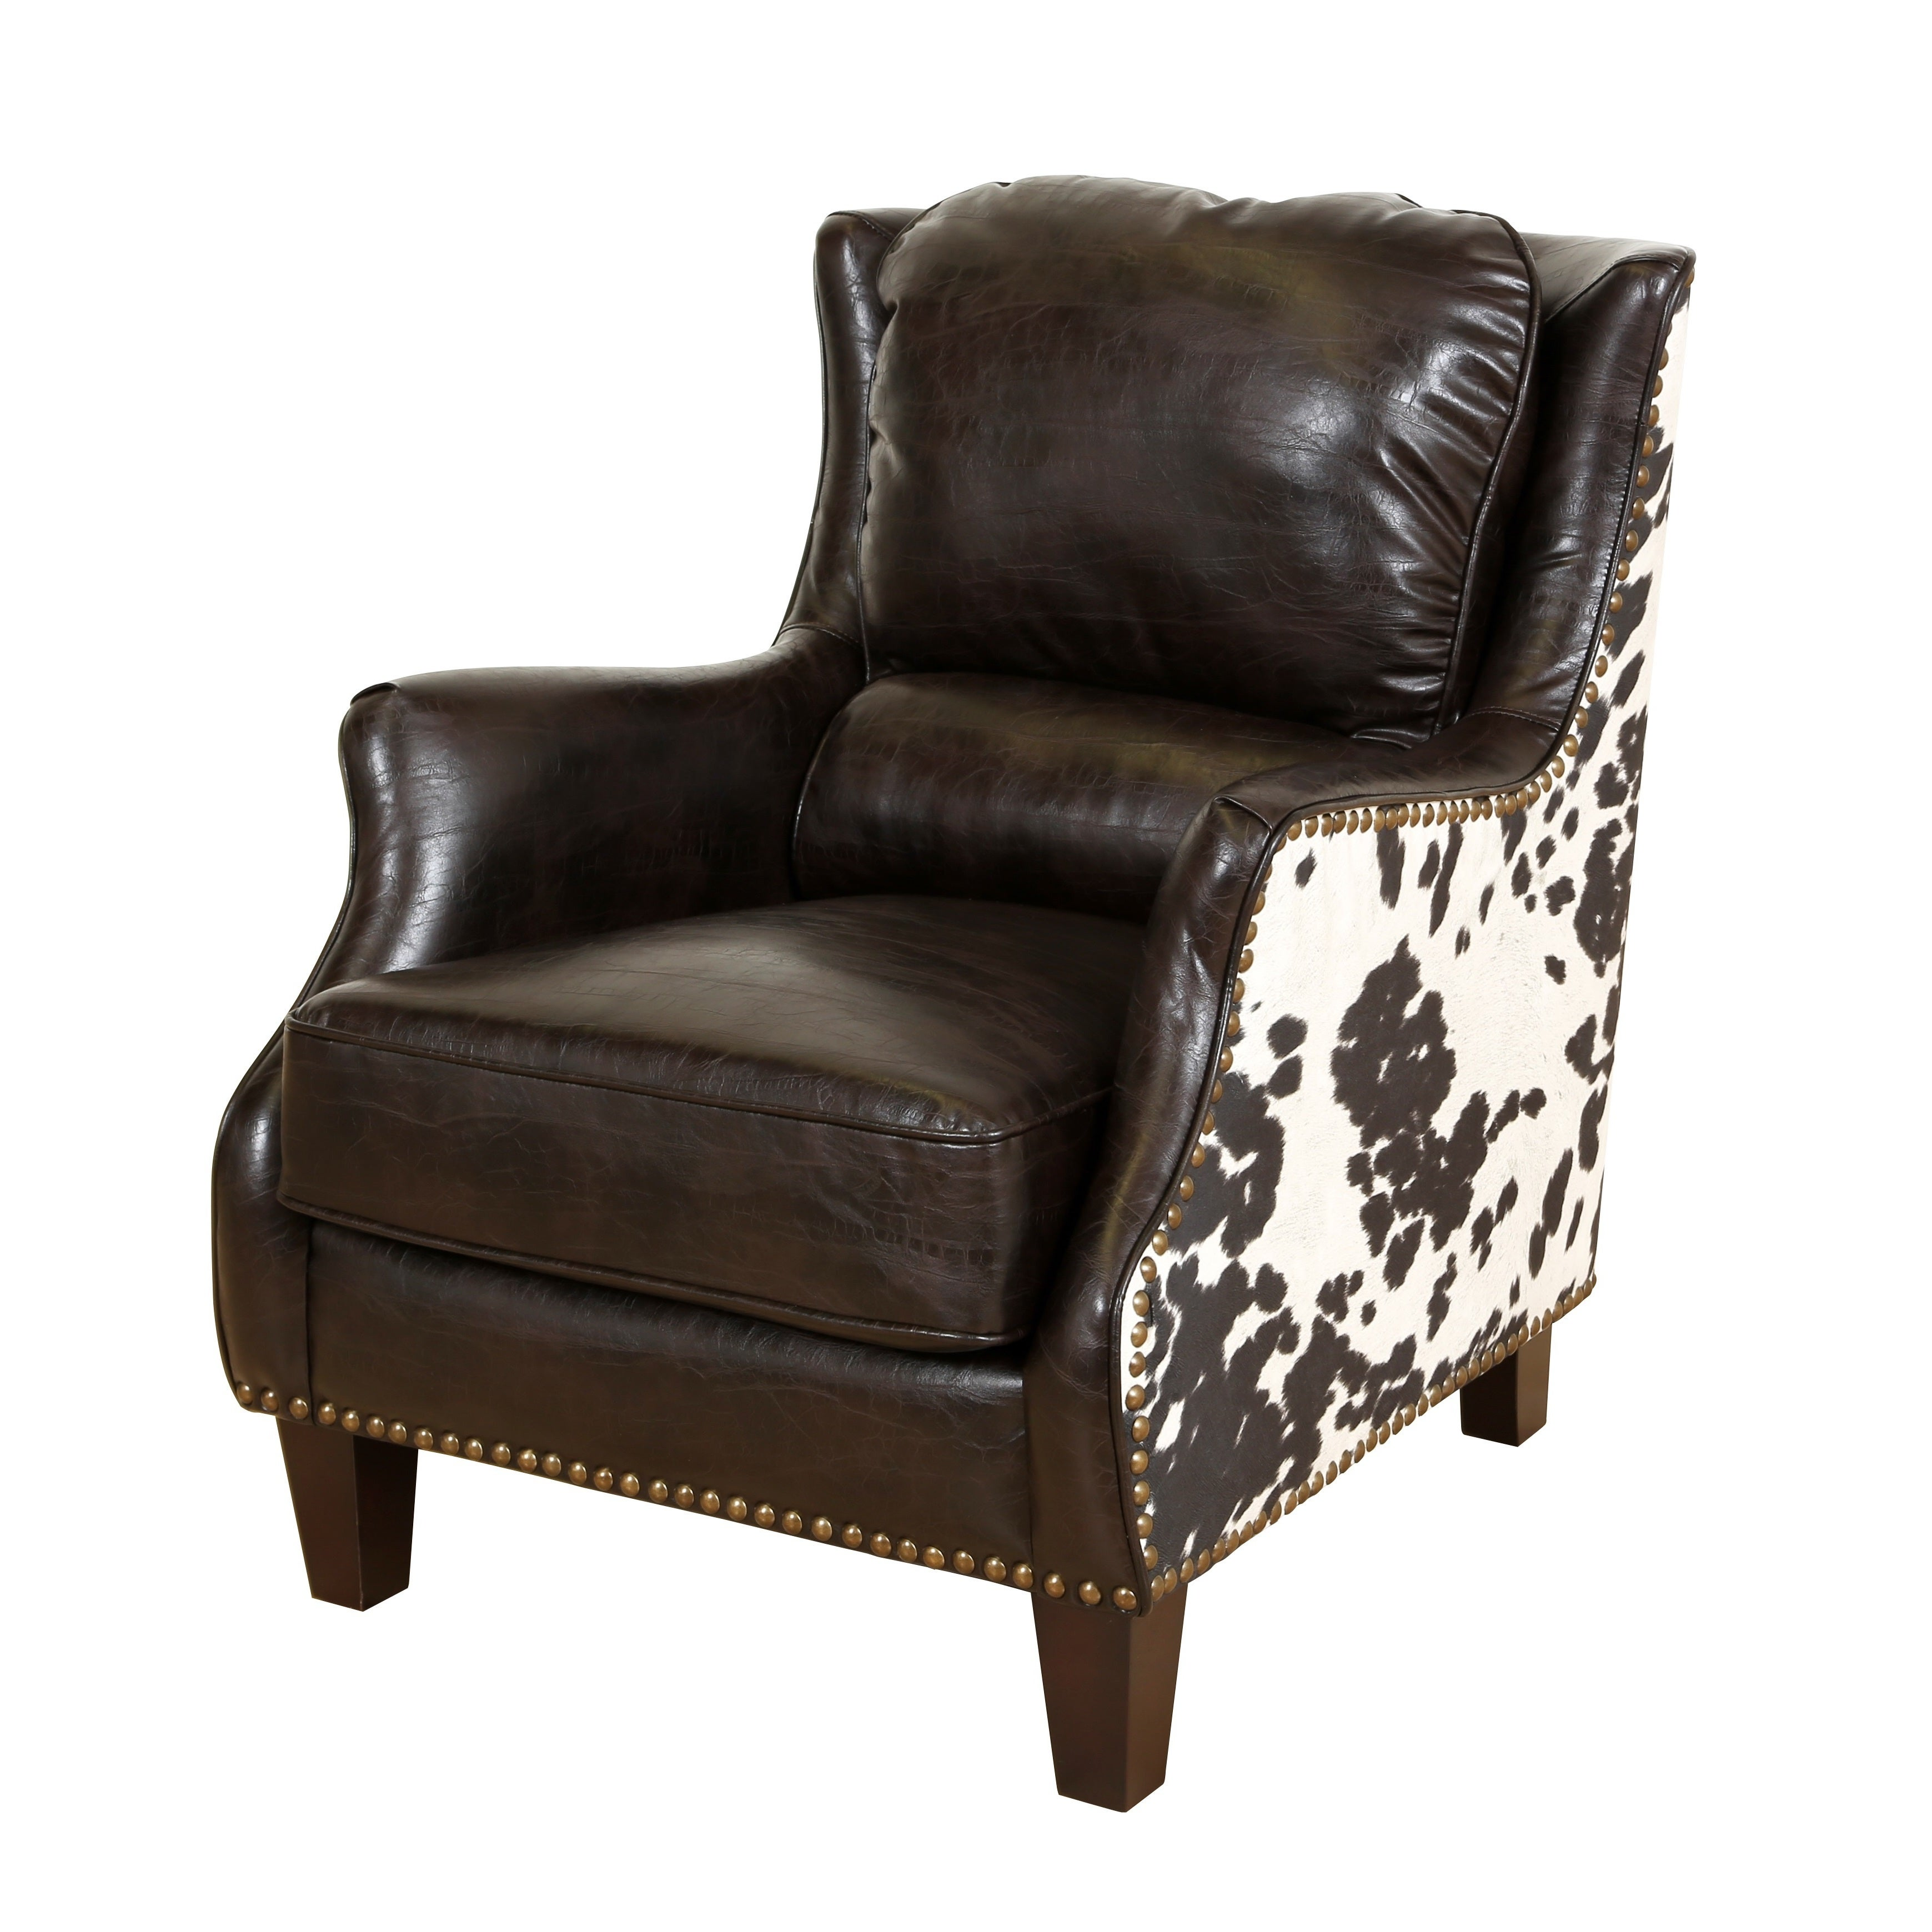 Excellent Porter Wrangler Espresso And Cow Print Bonded Leather Accent Chair 36H X 32D X 29W Alphanode Cool Chair Designs And Ideas Alphanodeonline